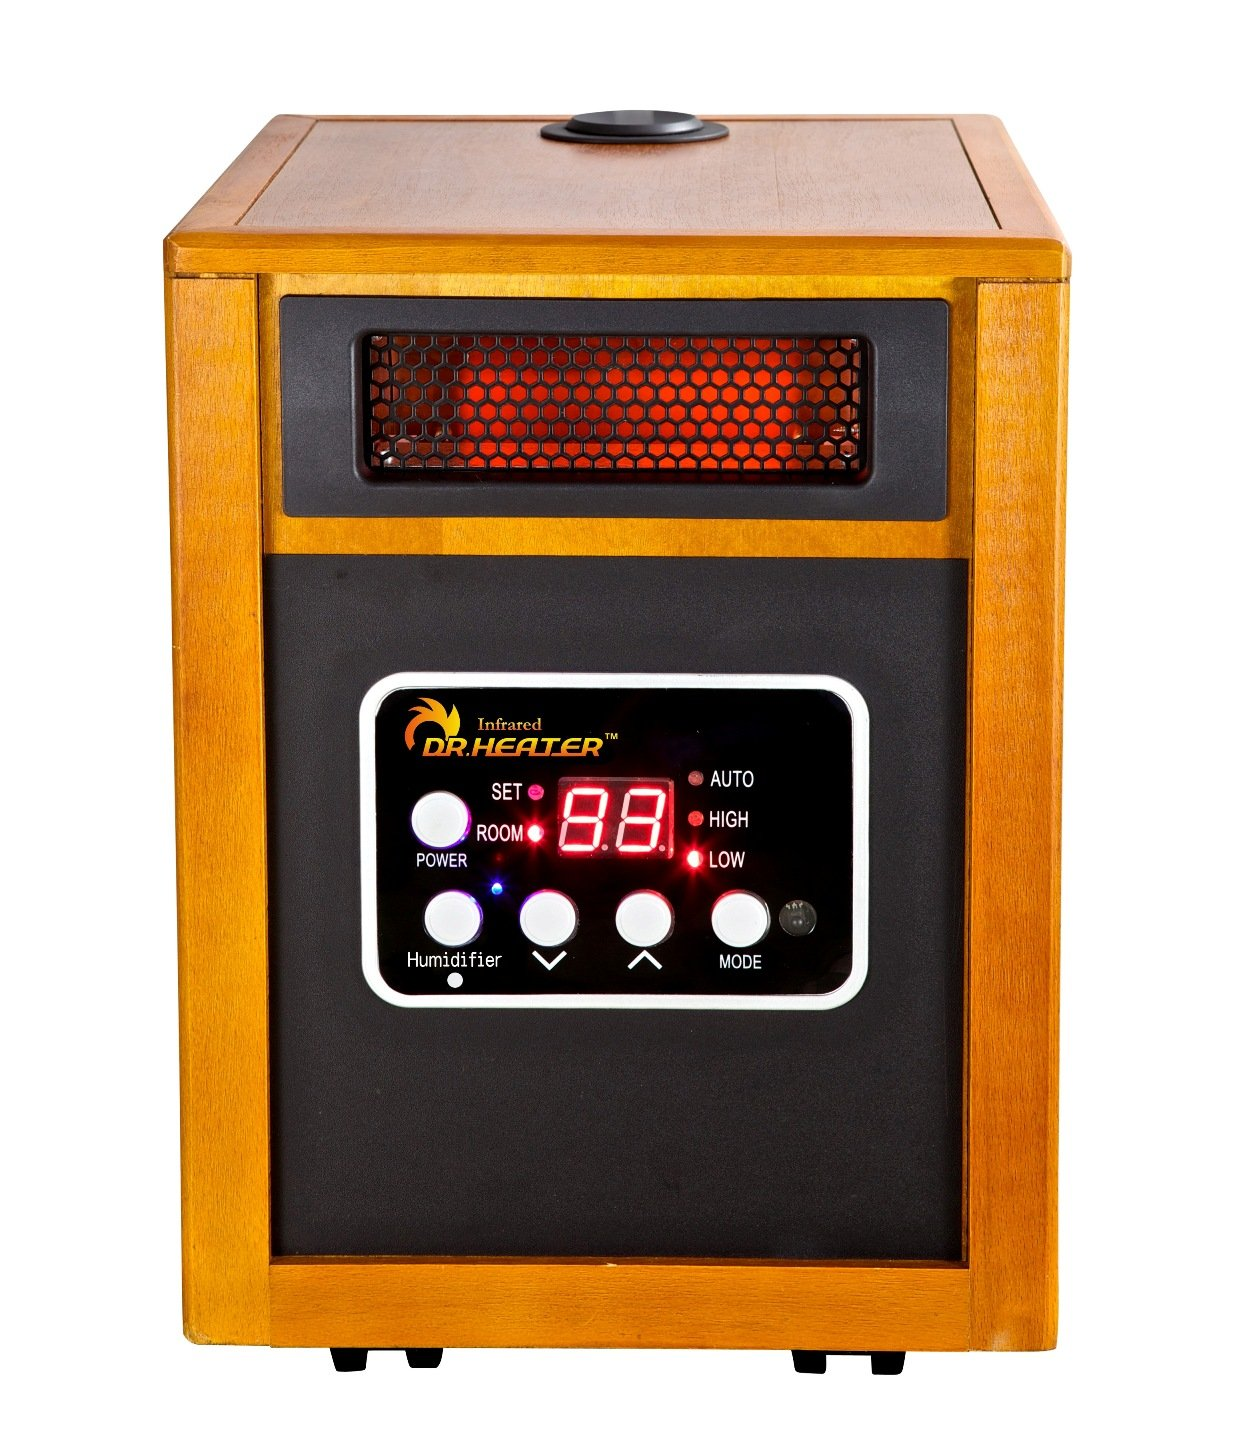 Dr. Infrared Heater Portable Space Heater with Humidifier, 1500-Watt by Dr Infrared Heater